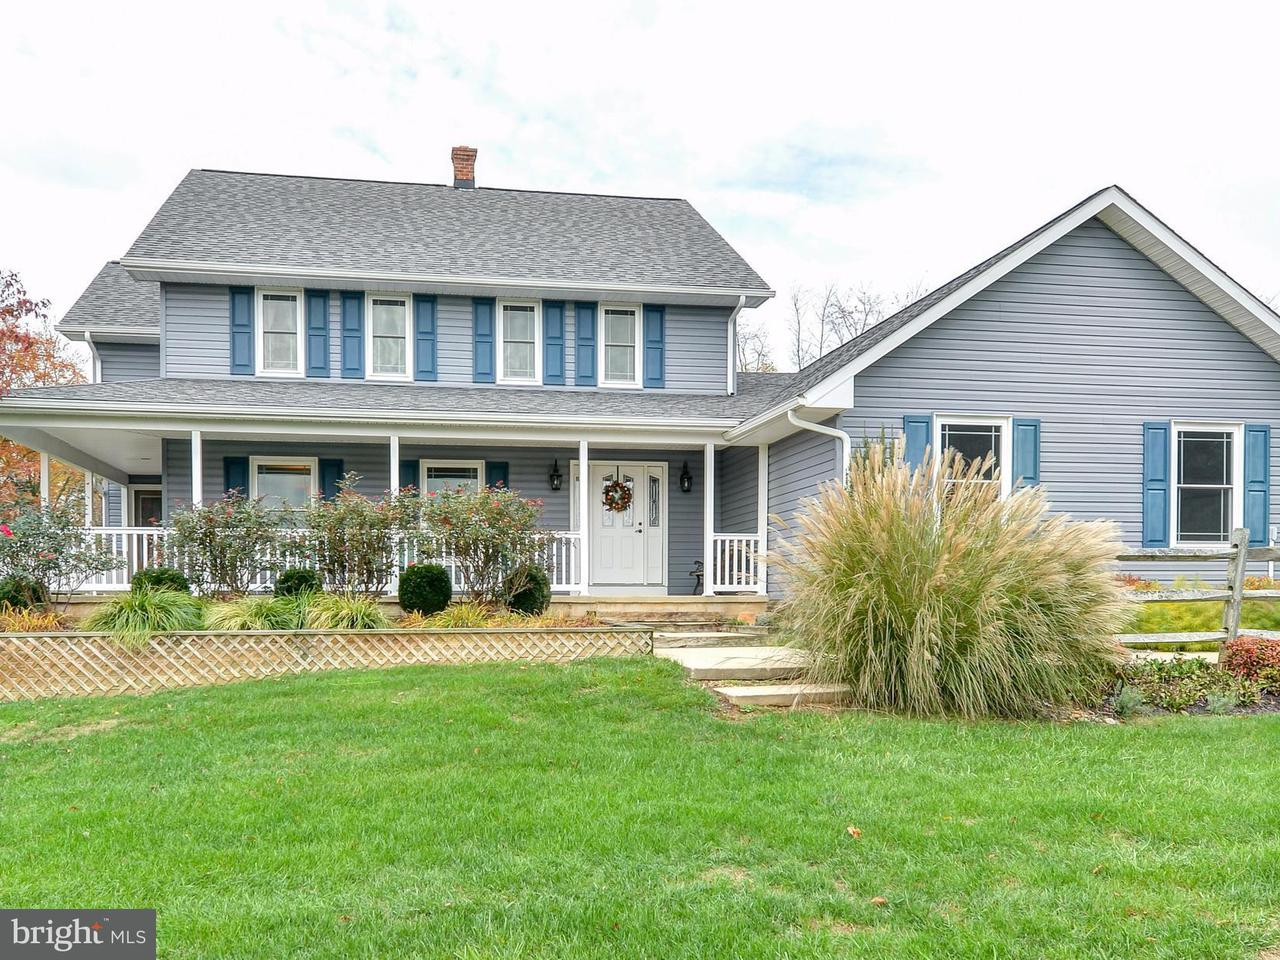 Single Family Home for Sale at 45 SIMPERS WAY 45 SIMPERS WAY North East, Maryland 21901 United States